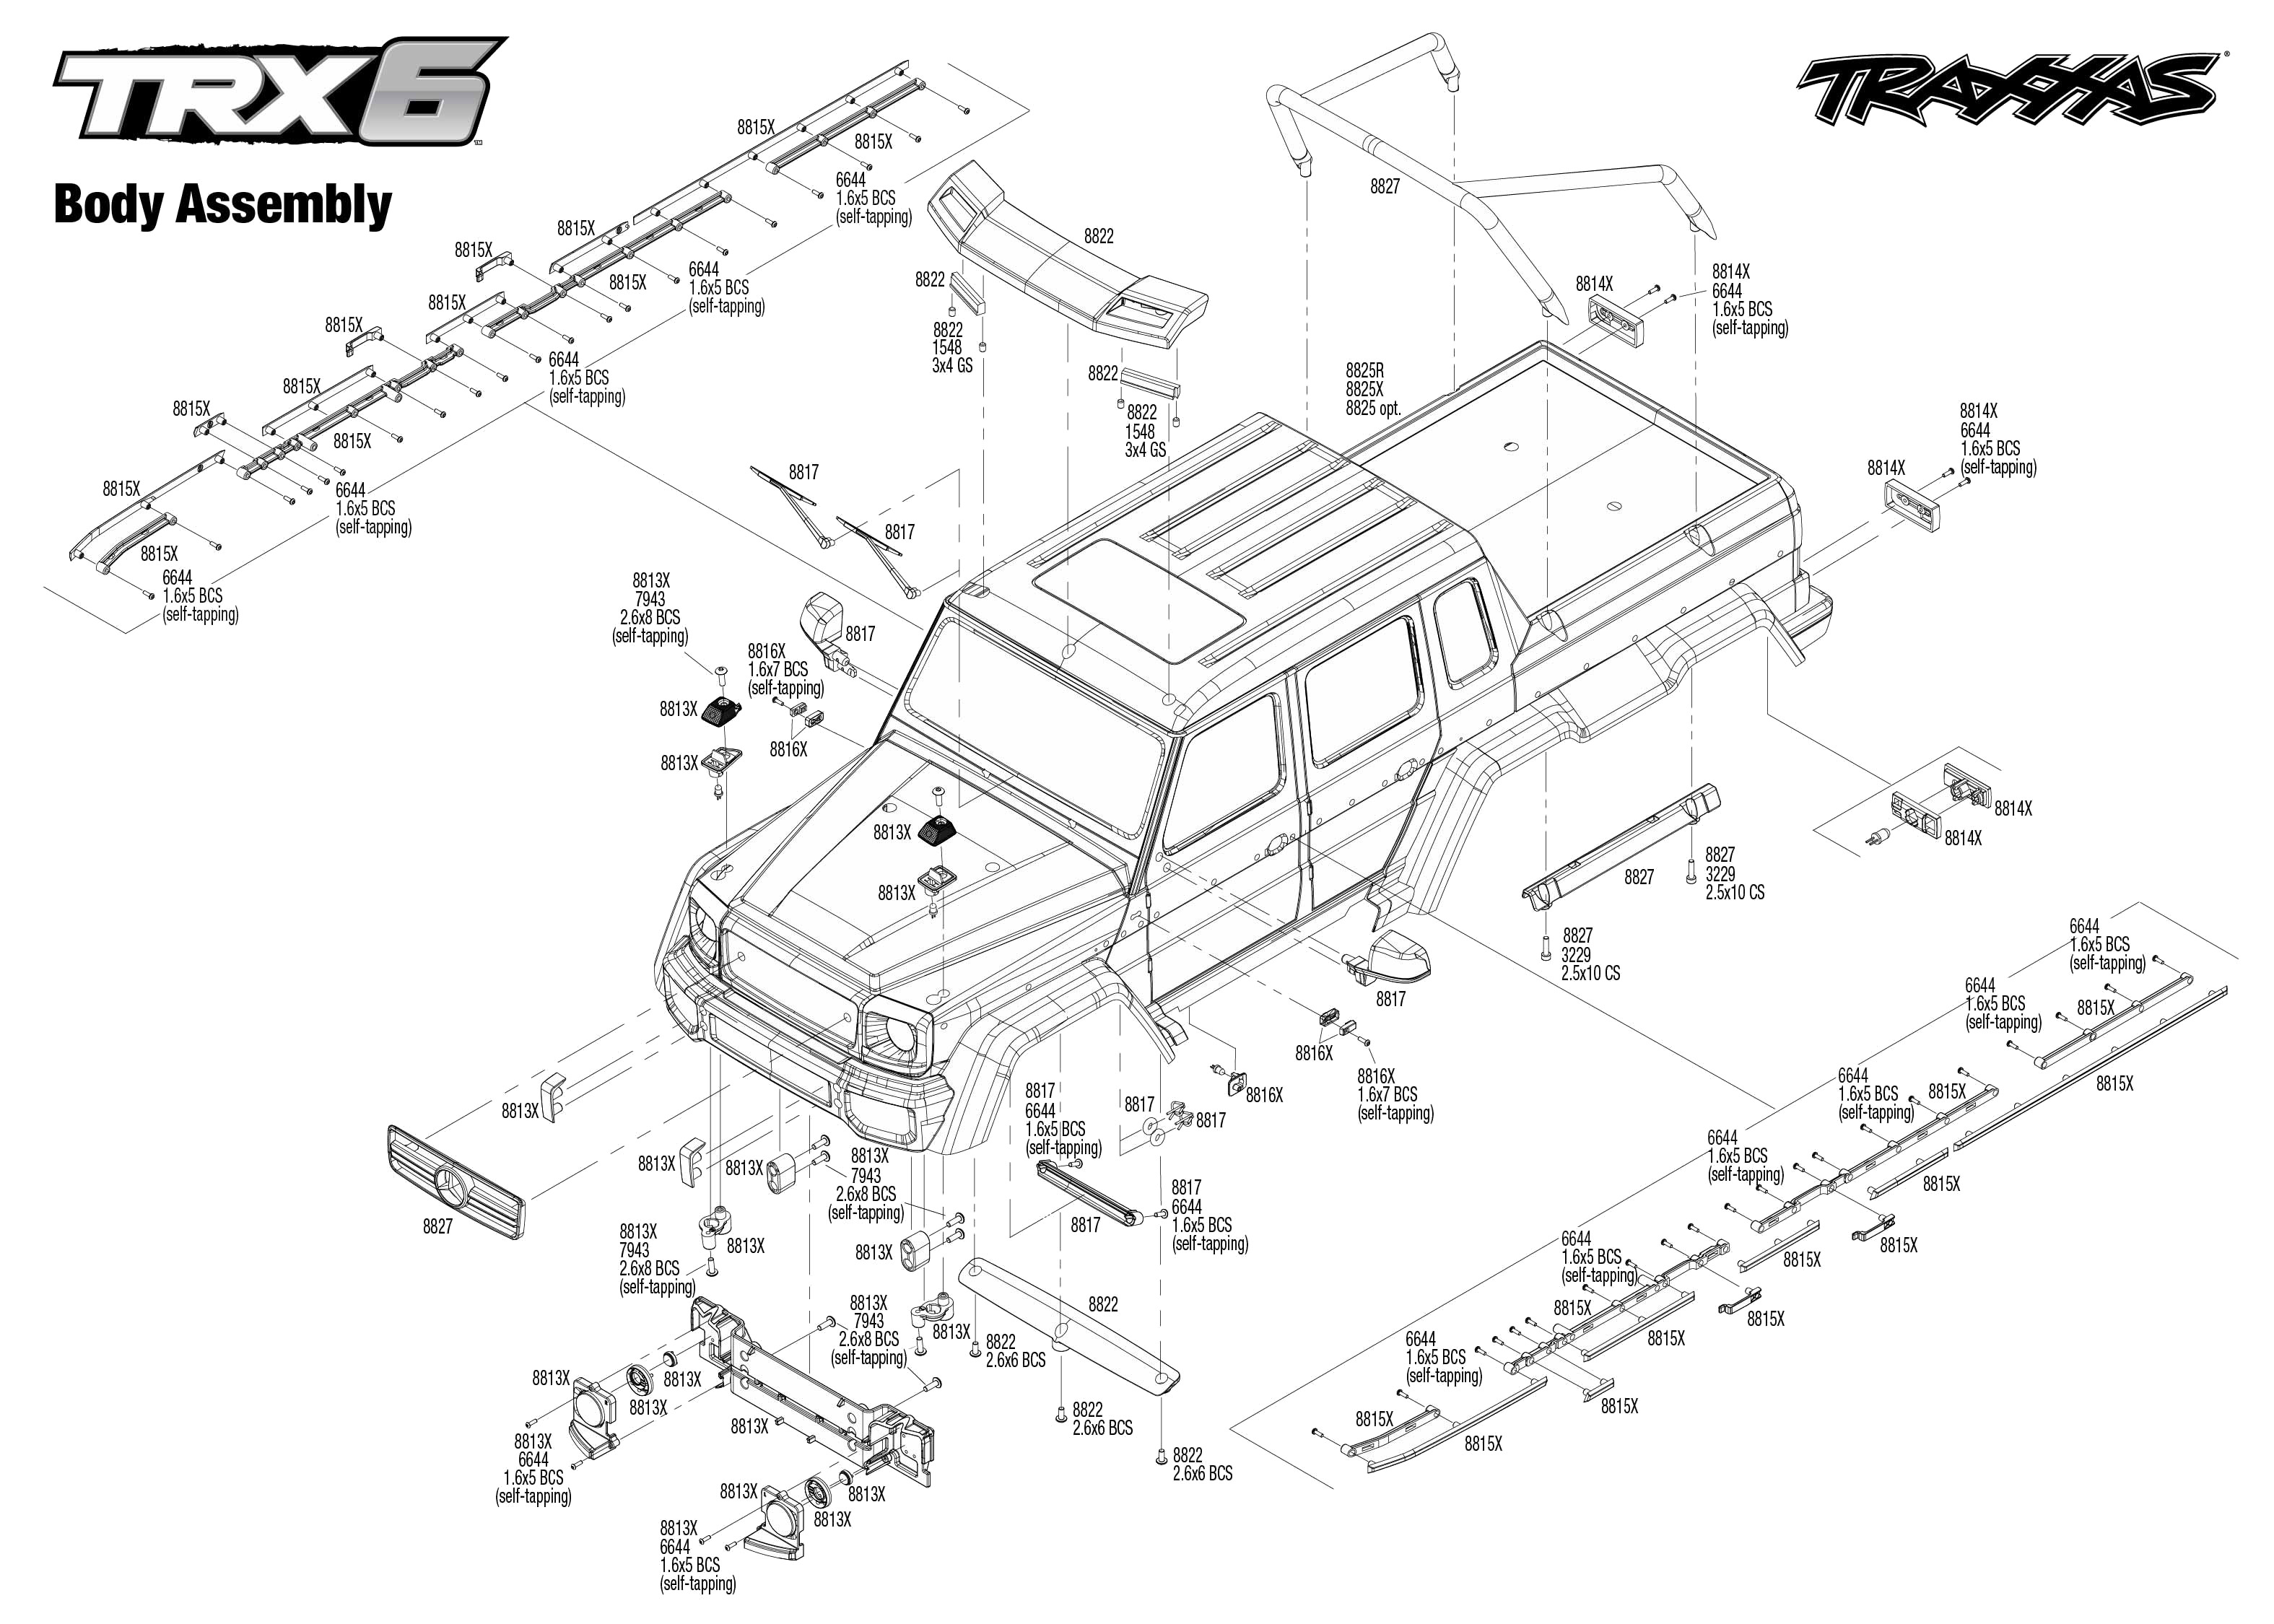 Exploded view: Traxxas TRX-6 Mercedes G 63 6x6 1:10 TQi